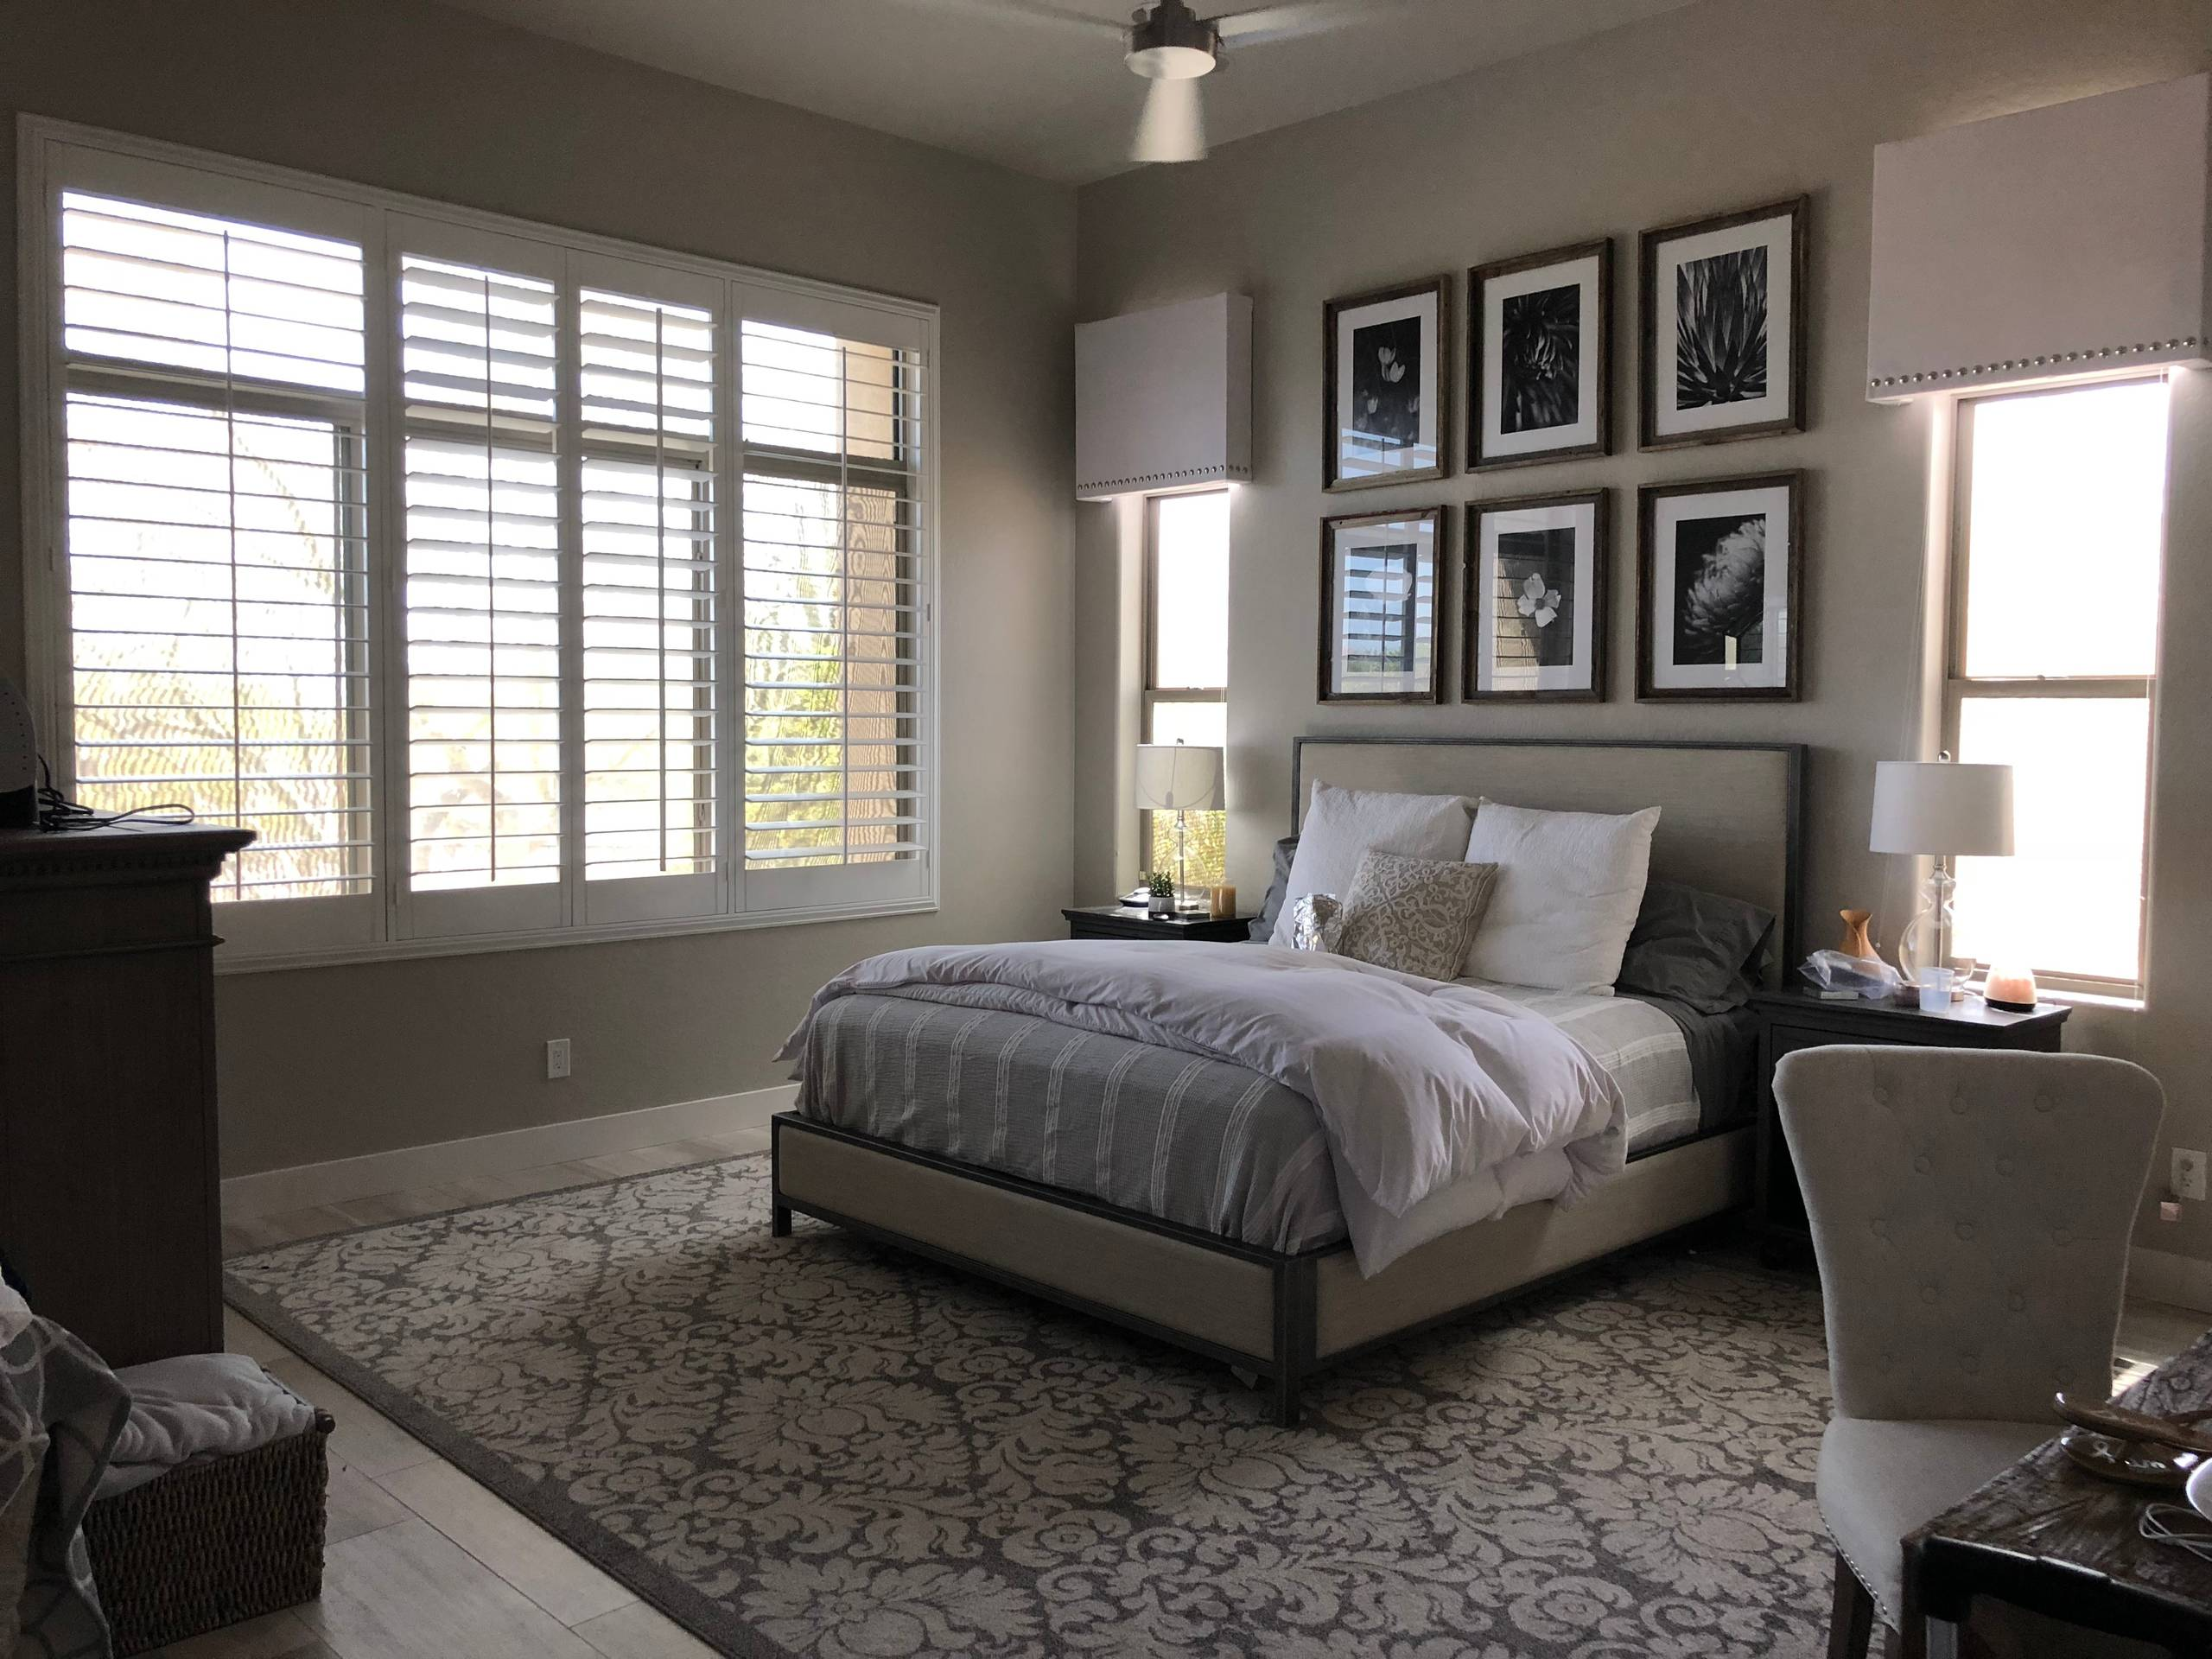 Upscale master bedroom makeover